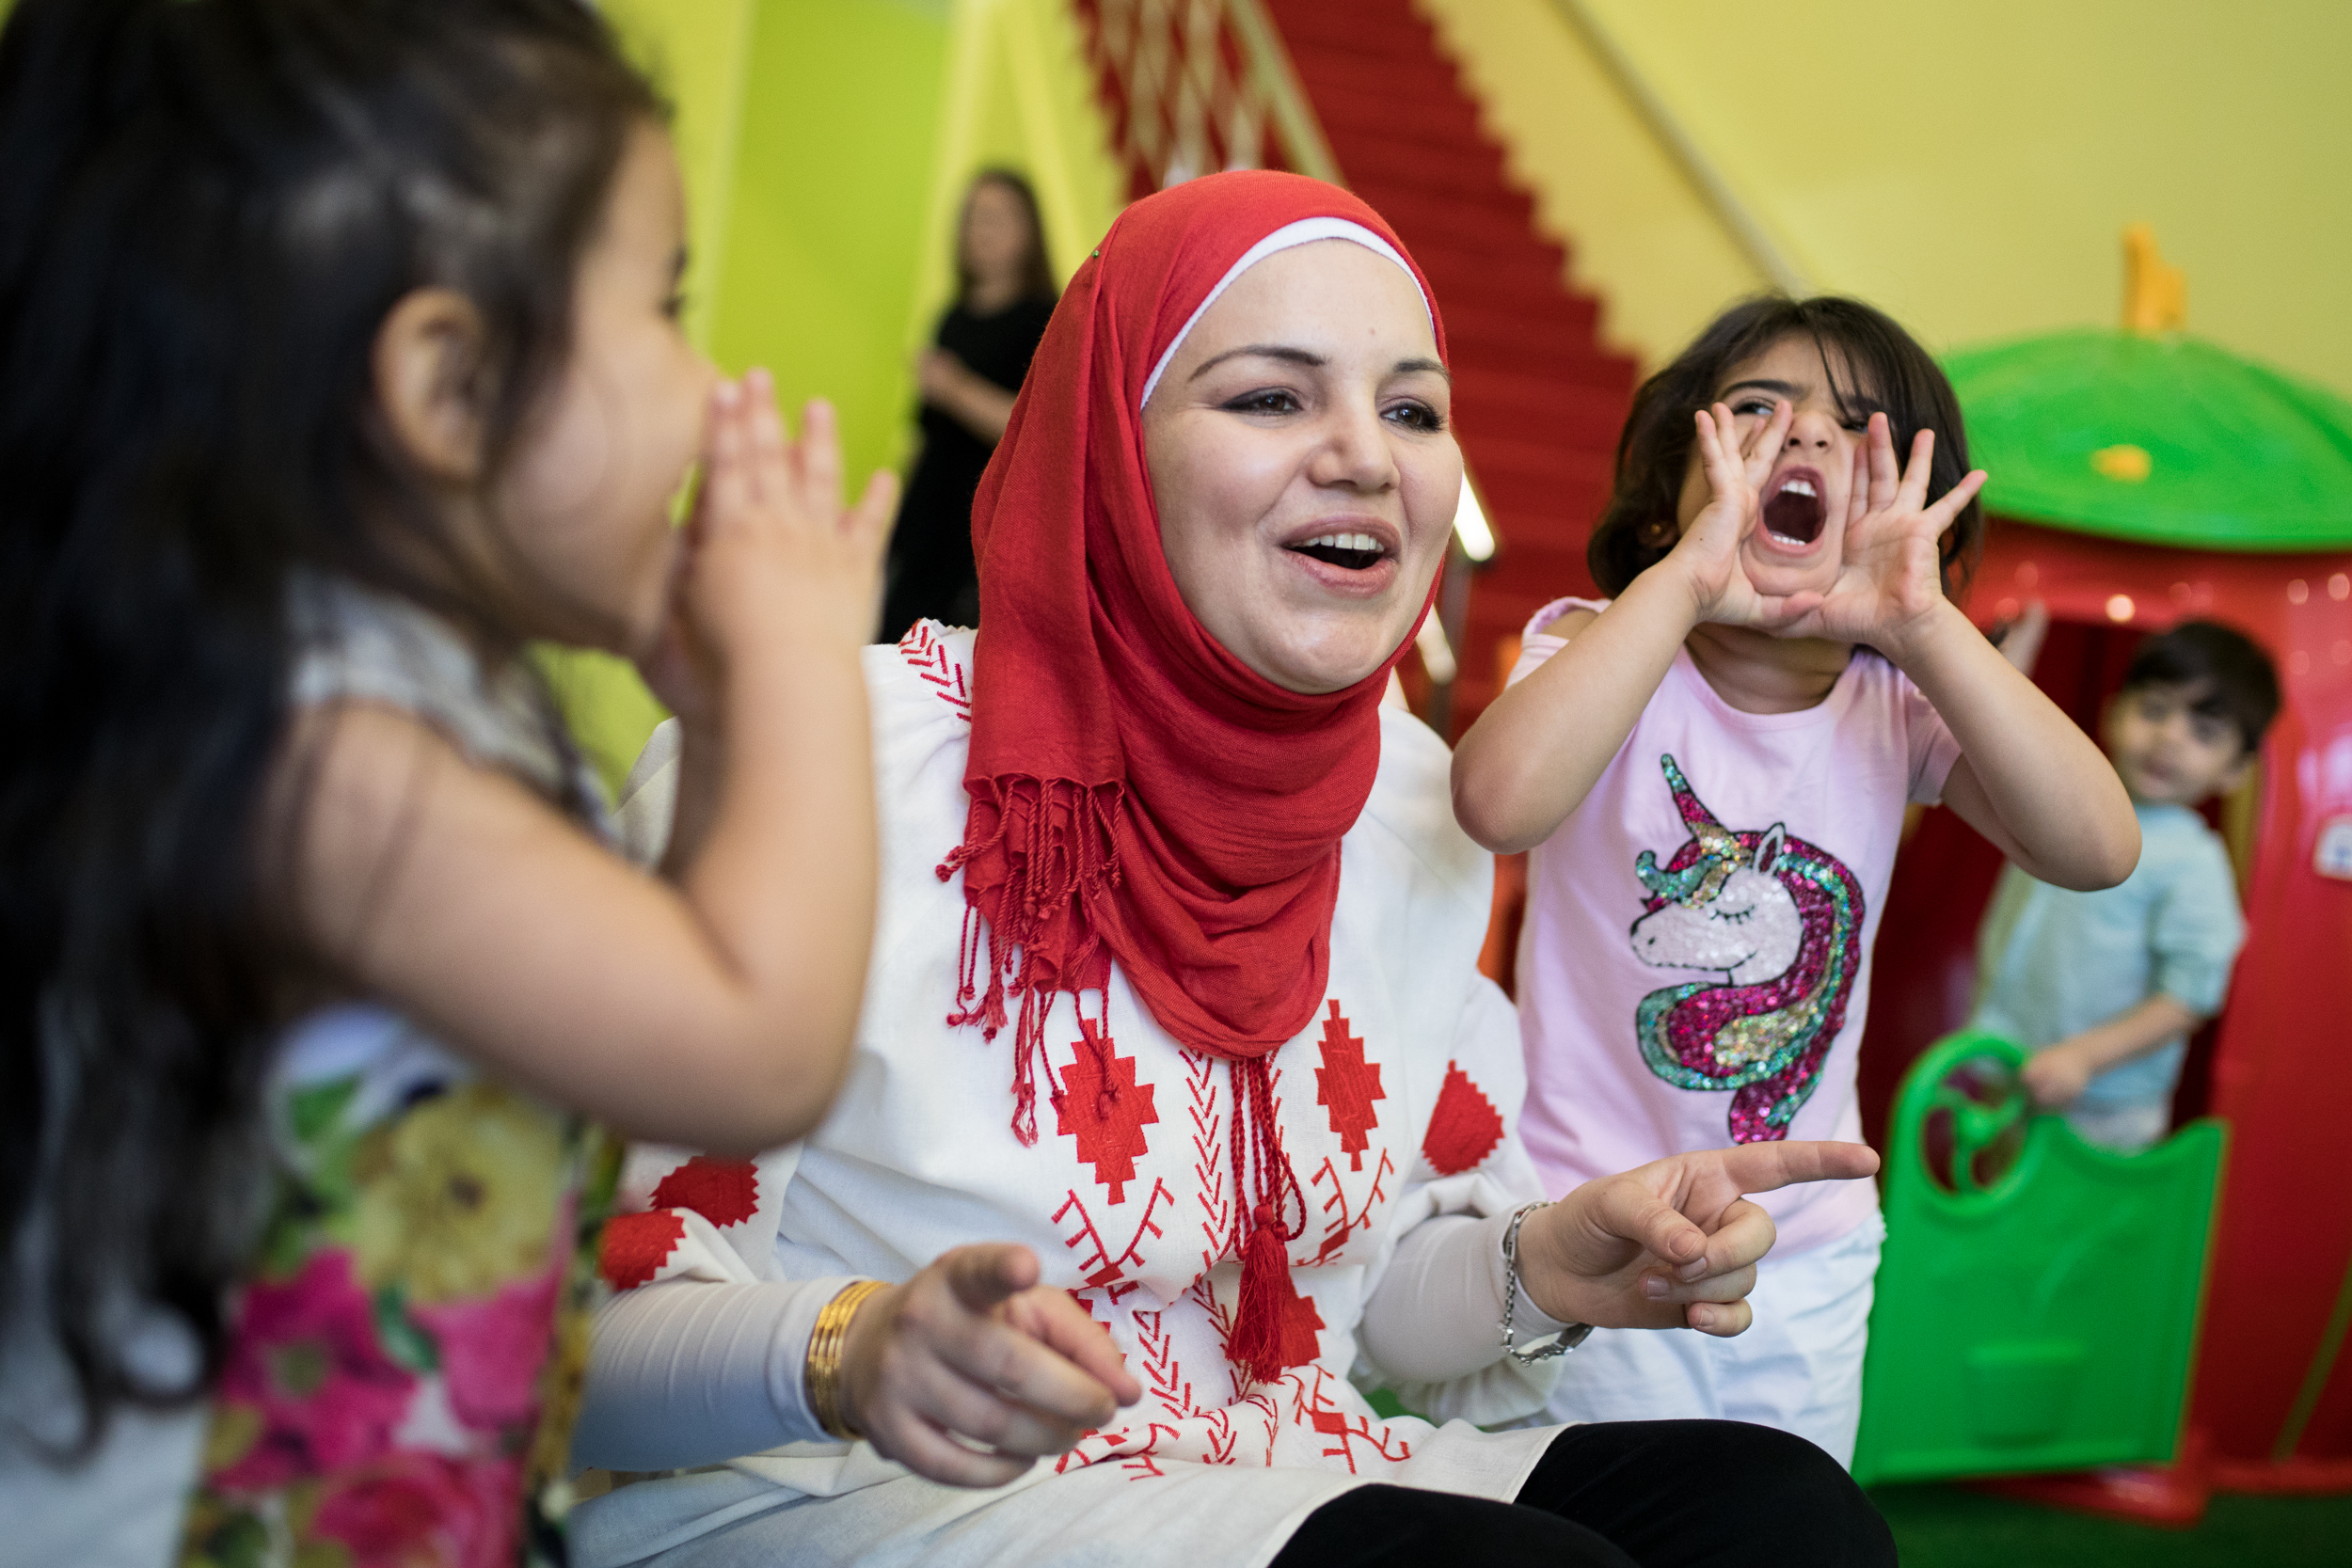 Dania Al Bouchi, (centre) age 30, from Hama, Syria, runs a Kindergarten in Gaziantep, Turkey with her husband Ahmad Al Bouchi. The pair moved from Deraa, Syria in 2013, expecting the conflict to be solved in one to two years, but haven�t seen their loved ones for over six years. After moving to Turkey, Dania started studying Turkish but struggled as she had nowhere to leave her children. She then started her own Kindergarten, employing Syrian women as staff. Using her background in civil engineering, she designed the building and also the business' branding. Any children are welcome to the Kindergarten, and Dania hopes it will encourage Syrian mothers to be able to work or study whilst their children are safely looked after. July 2018 - Gaziantep, Turkey